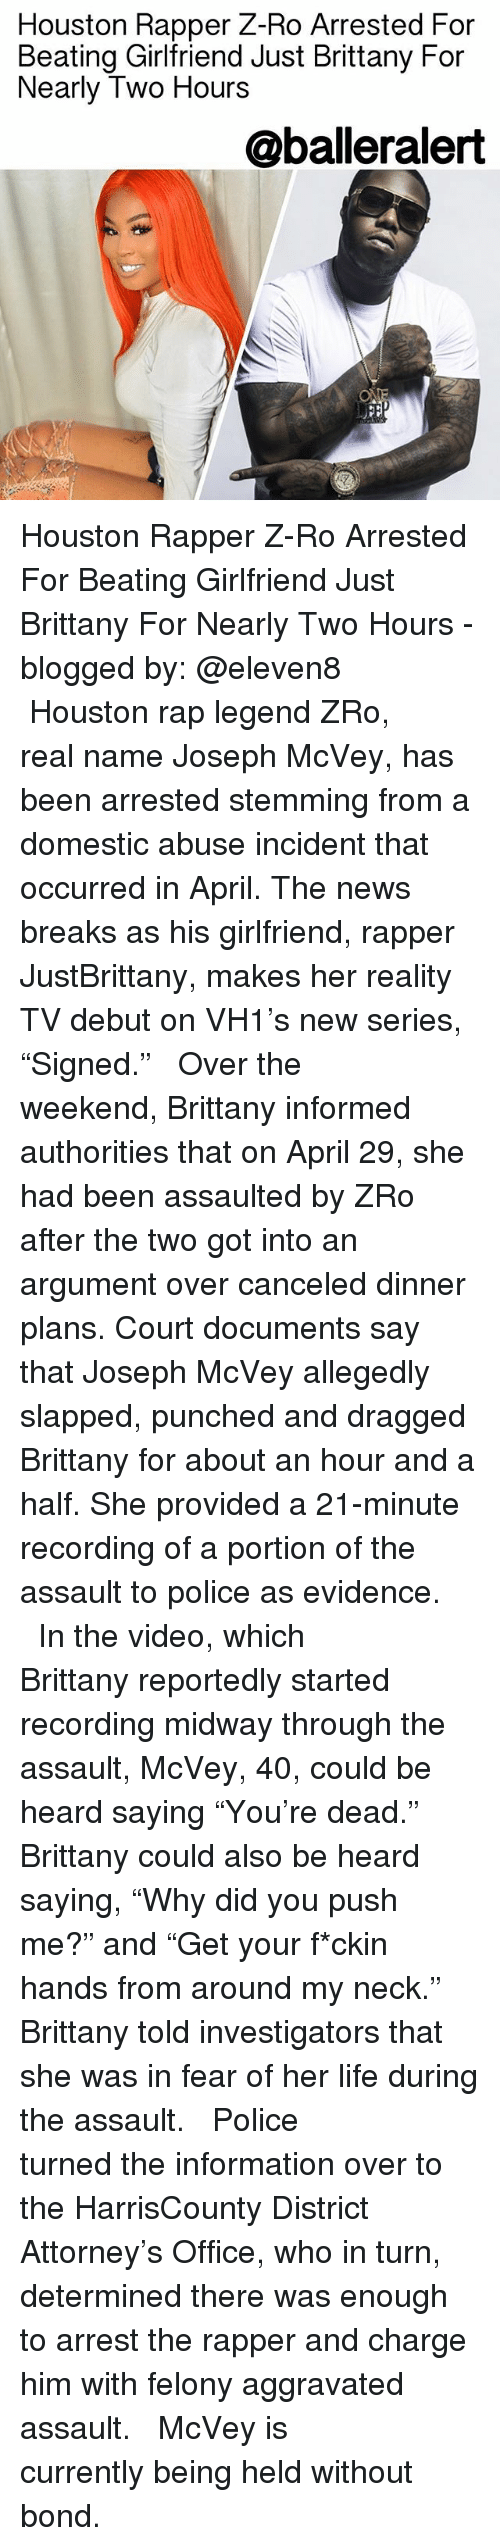 "Life, Memes, and News: Houston Rapper Z-Ro Arrested For  Beating Girlfriend Just Brittany For  Nearly Two Hours  @balleralert Houston Rapper Z-Ro Arrested For Beating Girlfriend Just Brittany For Nearly Two Hours - blogged by: @eleven8 ⠀⠀⠀⠀⠀⠀⠀⠀⠀ ⠀⠀⠀⠀⠀⠀⠀⠀⠀ Houston rap legend ZRo, real name Joseph McVey, has been arrested stemming from a domestic abuse incident that occurred in April. The news breaks as his girlfriend, rapper JustBrittany, makes her reality TV debut on VH1's new series, ""Signed."" ⠀⠀⠀⠀⠀⠀⠀⠀⠀ ⠀⠀⠀⠀⠀⠀⠀⠀⠀ Over the weekend, Brittany informed authorities that on April 29, she had been assaulted by ZRo after the two got into an argument over canceled dinner plans. Court documents say that Joseph McVey allegedly slapped, punched and dragged Brittany for about an hour and a half. She provided a 21-minute recording of a portion of the assault to police as evidence. ⠀⠀⠀⠀⠀⠀⠀⠀⠀ ⠀⠀⠀⠀⠀⠀⠀⠀⠀ In the video, which Brittany reportedly started recording midway through the assault, McVey, 40, could be heard saying ""You're dead."" Brittany could also be heard saying, ""Why did you push me?"" and ""Get your f*ckin hands from around my neck."" Brittany told investigators that she was in fear of her life during the assault. ⠀⠀⠀⠀⠀⠀⠀⠀⠀ ⠀⠀⠀⠀⠀⠀⠀⠀⠀ Police turned the information over to the HarrisCounty District Attorney's Office, who in turn, determined there was enough to arrest the rapper and charge him with felony aggravated assault. ⠀⠀⠀⠀⠀⠀⠀⠀⠀ ⠀⠀⠀⠀⠀⠀⠀⠀⠀ McVey is currently being held without bond."